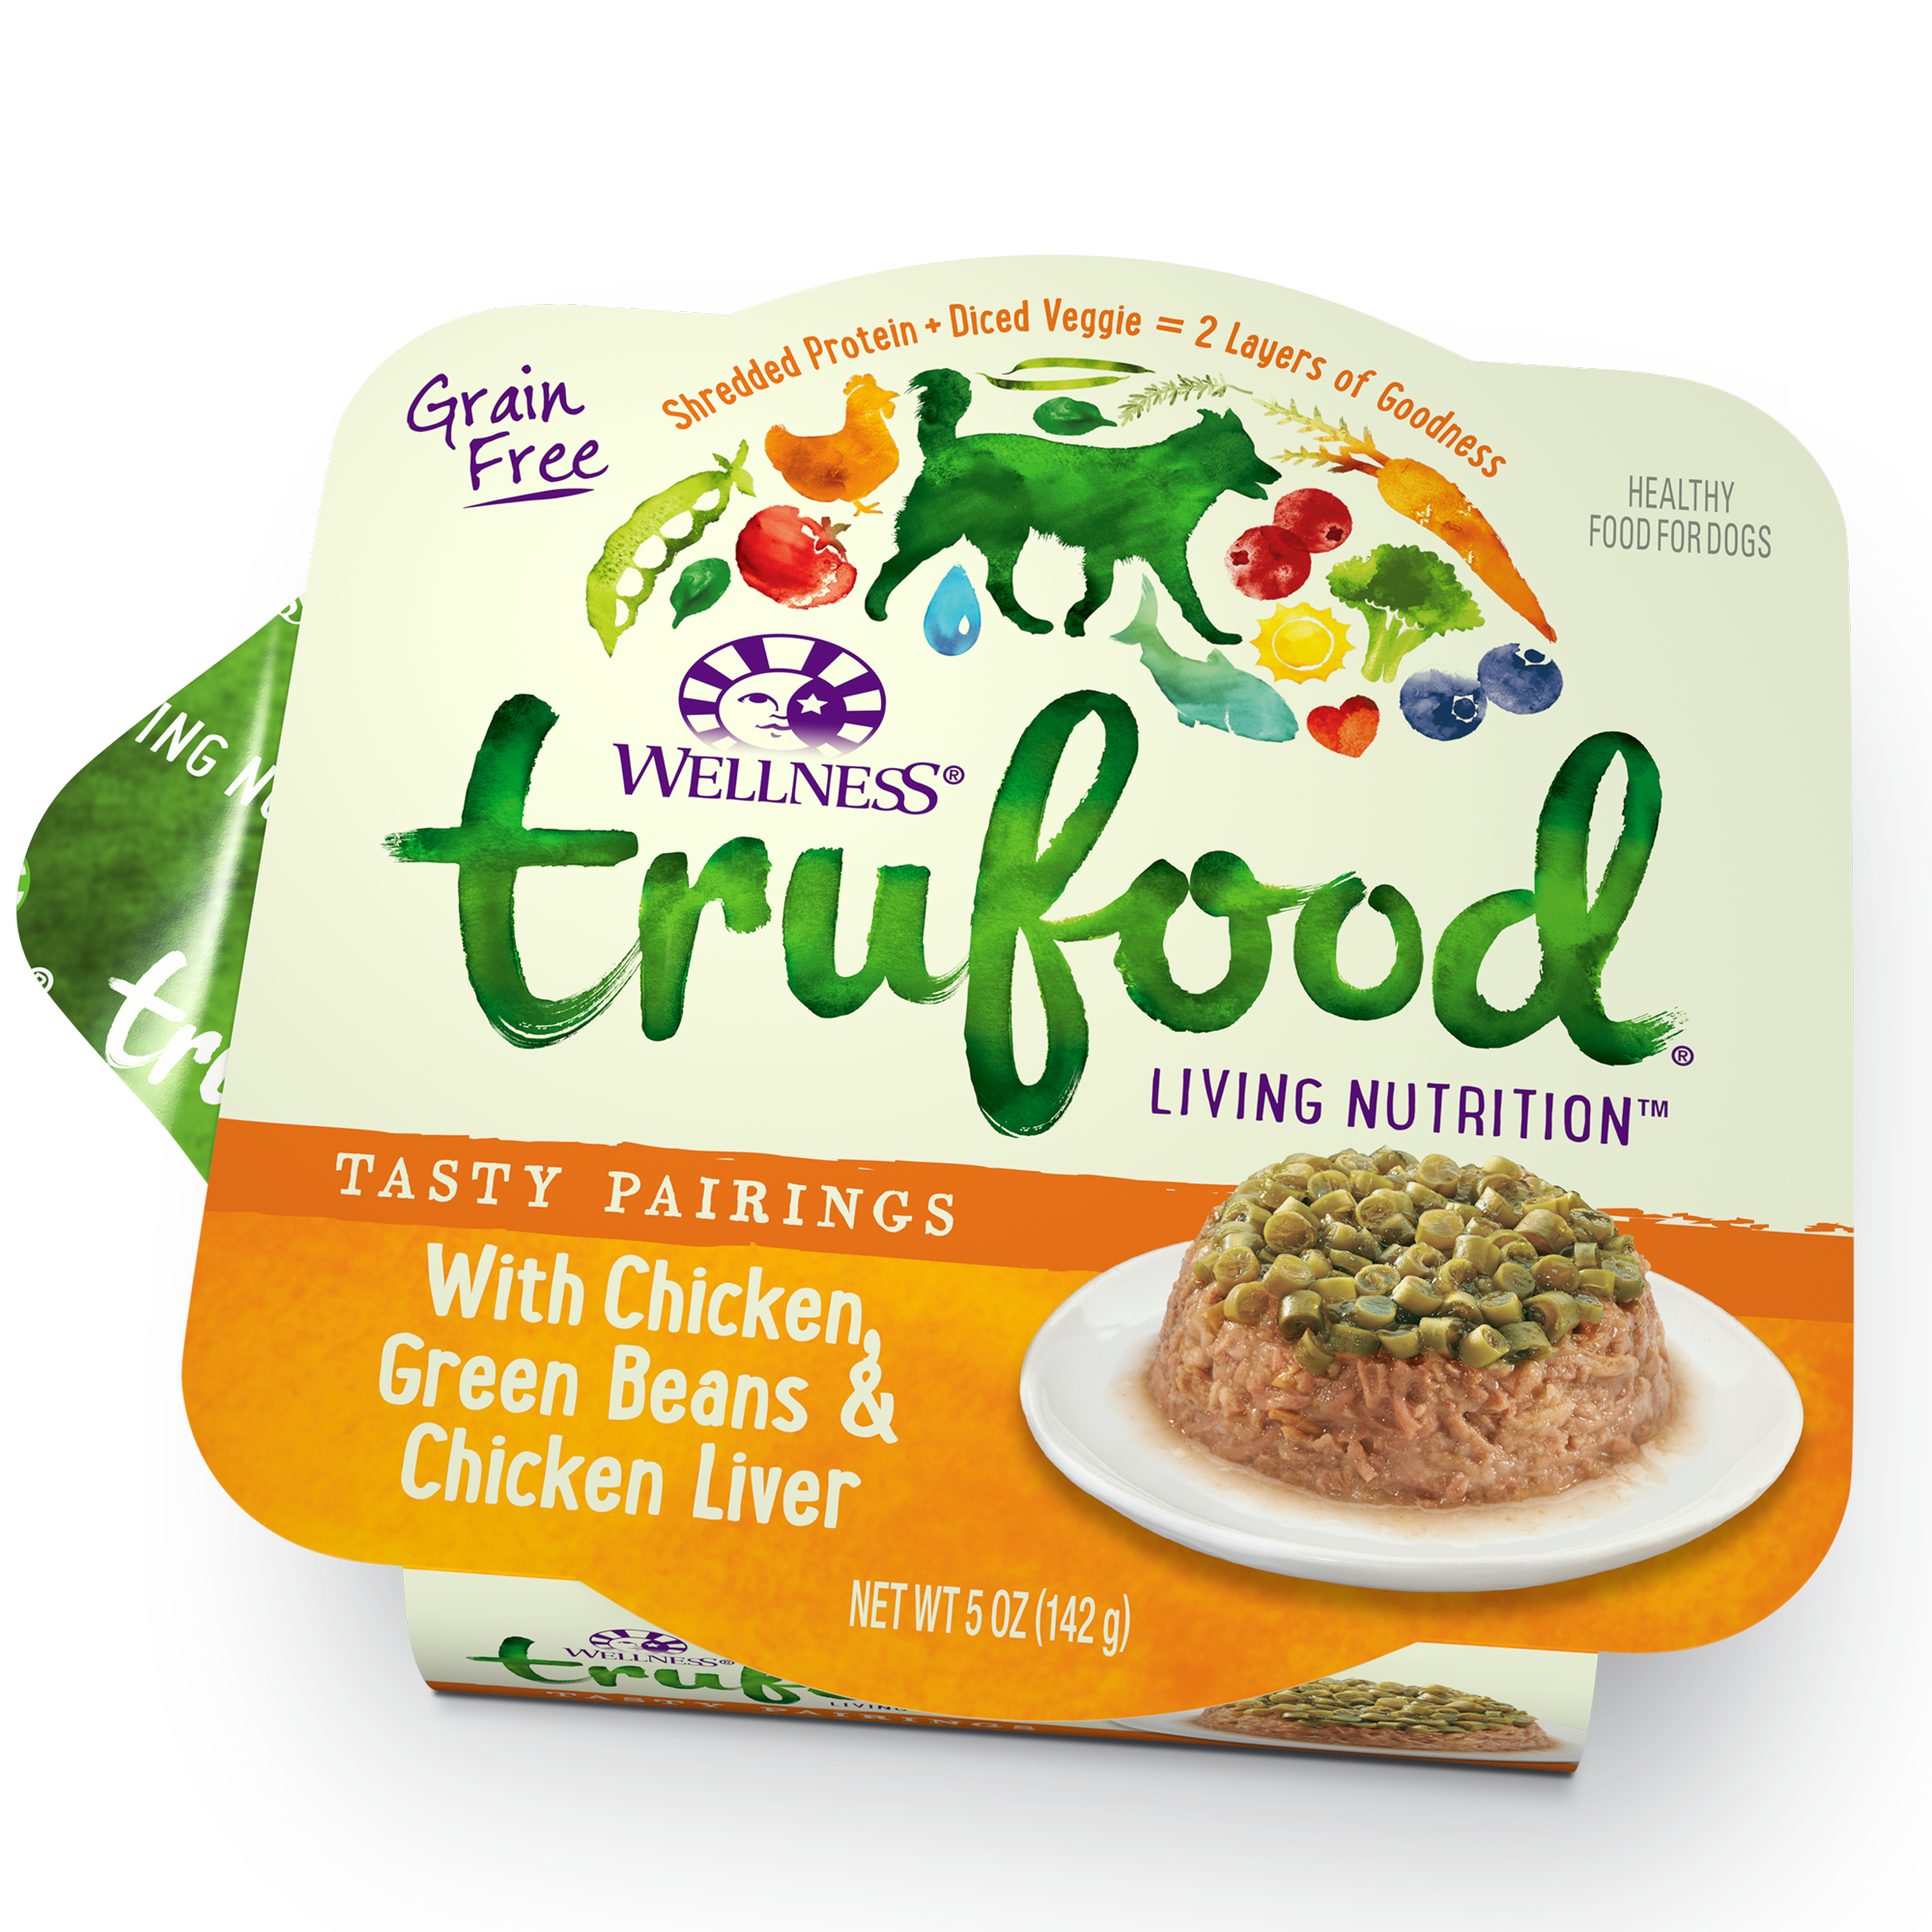 Trufood tasty pairings chicken green beans chicken liver tasty pairing chicken gr beans liver forumfinder Image collections